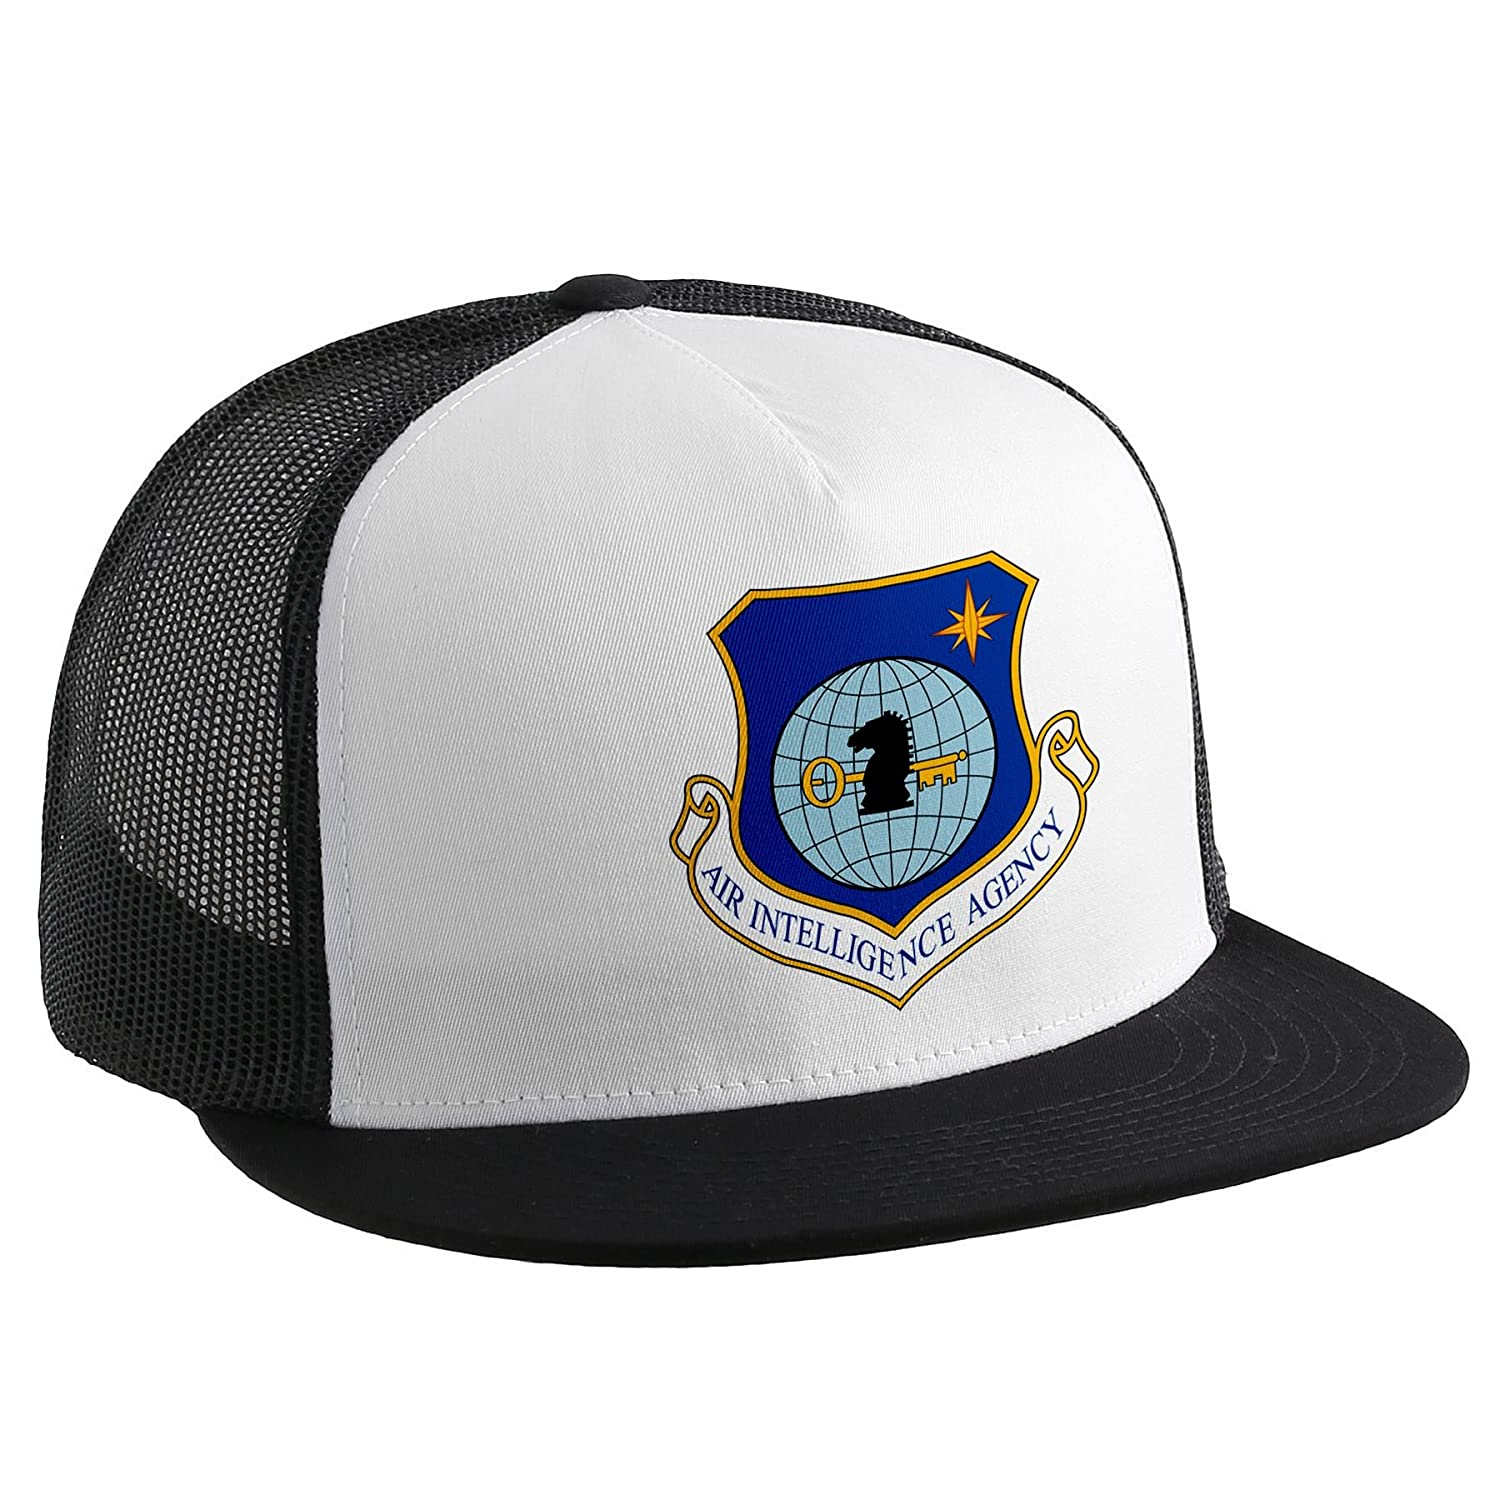 Trucker Hat with Air Intelligence Agency obsoleteエンブレム   B00V1N3XI6